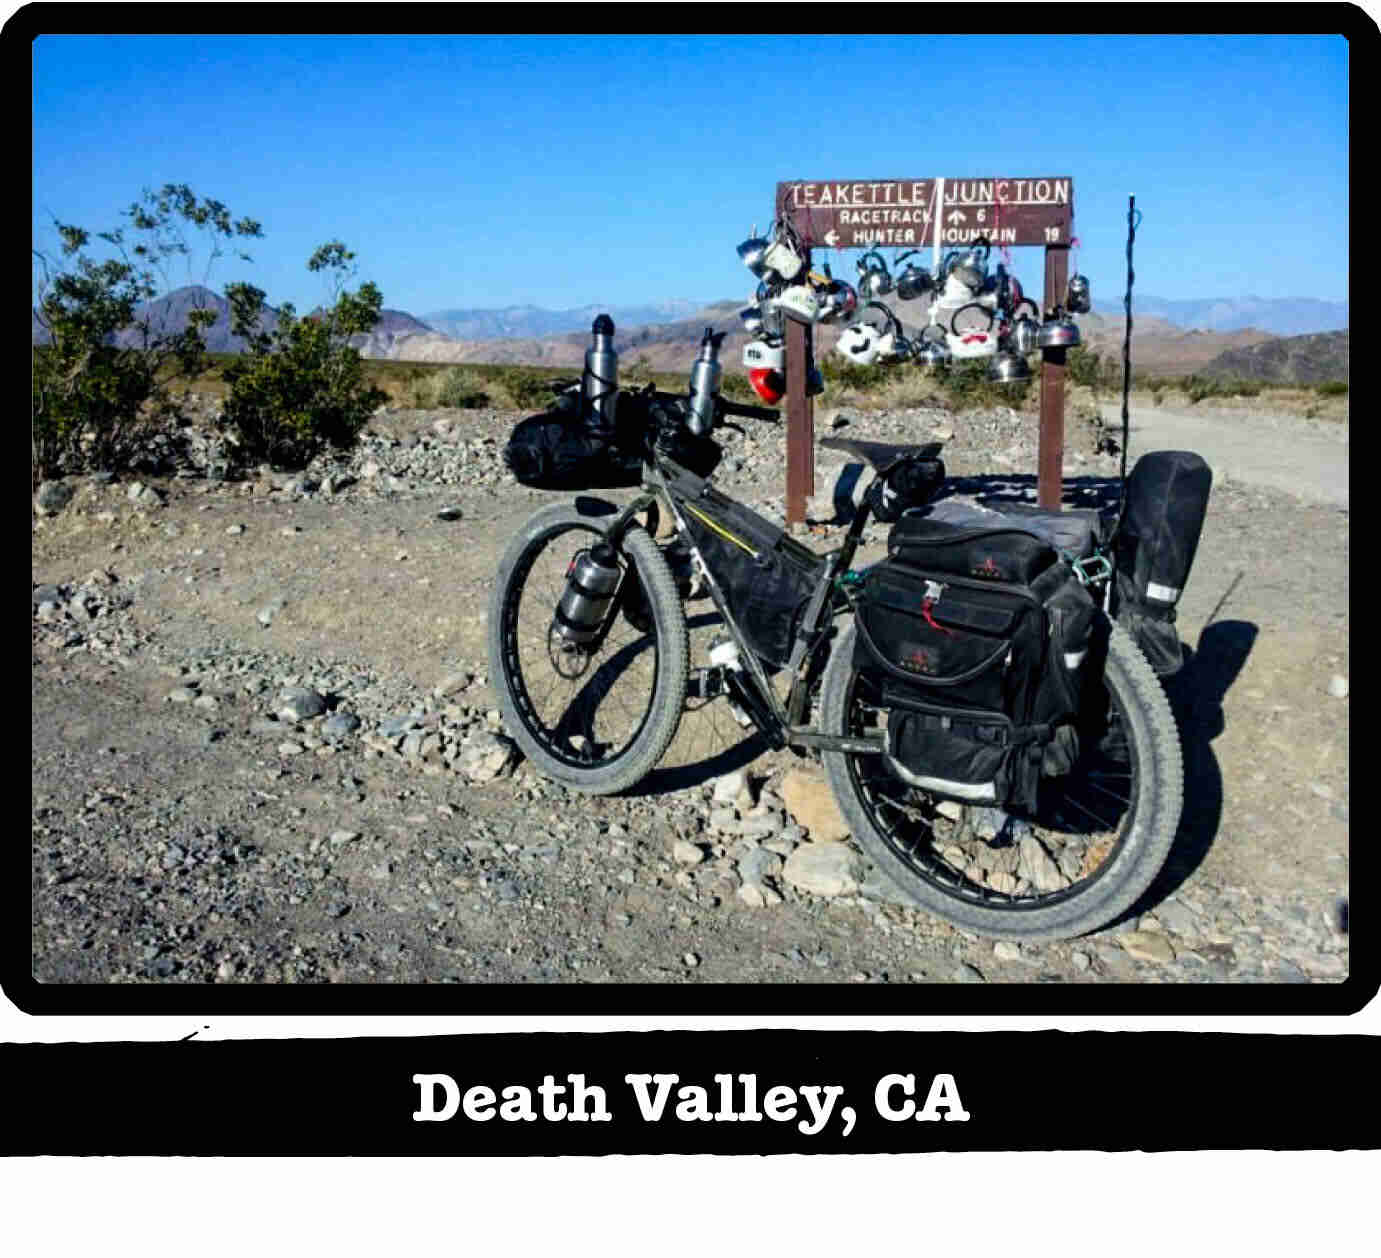 Left side view of a Surly ECR fat bike on a rocky trail, with hills in the background - Death Valley, CA tag below image